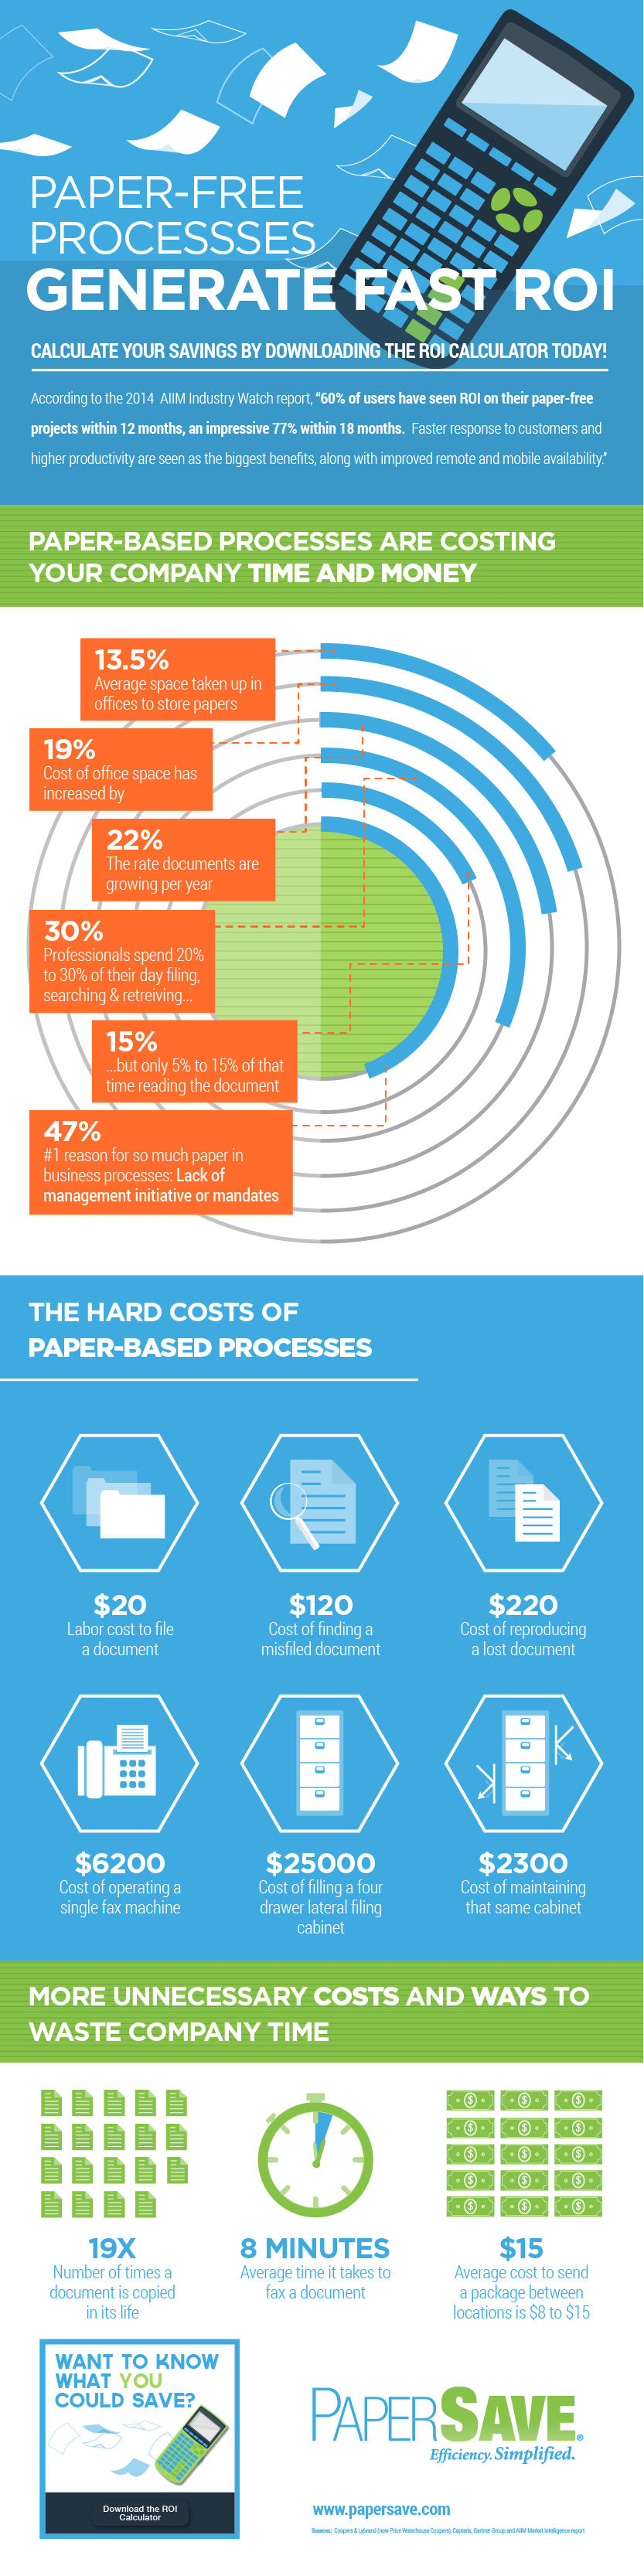 INFOGRAPHIC-Paper-Free-Processes-Generate-Fast-ROI-1